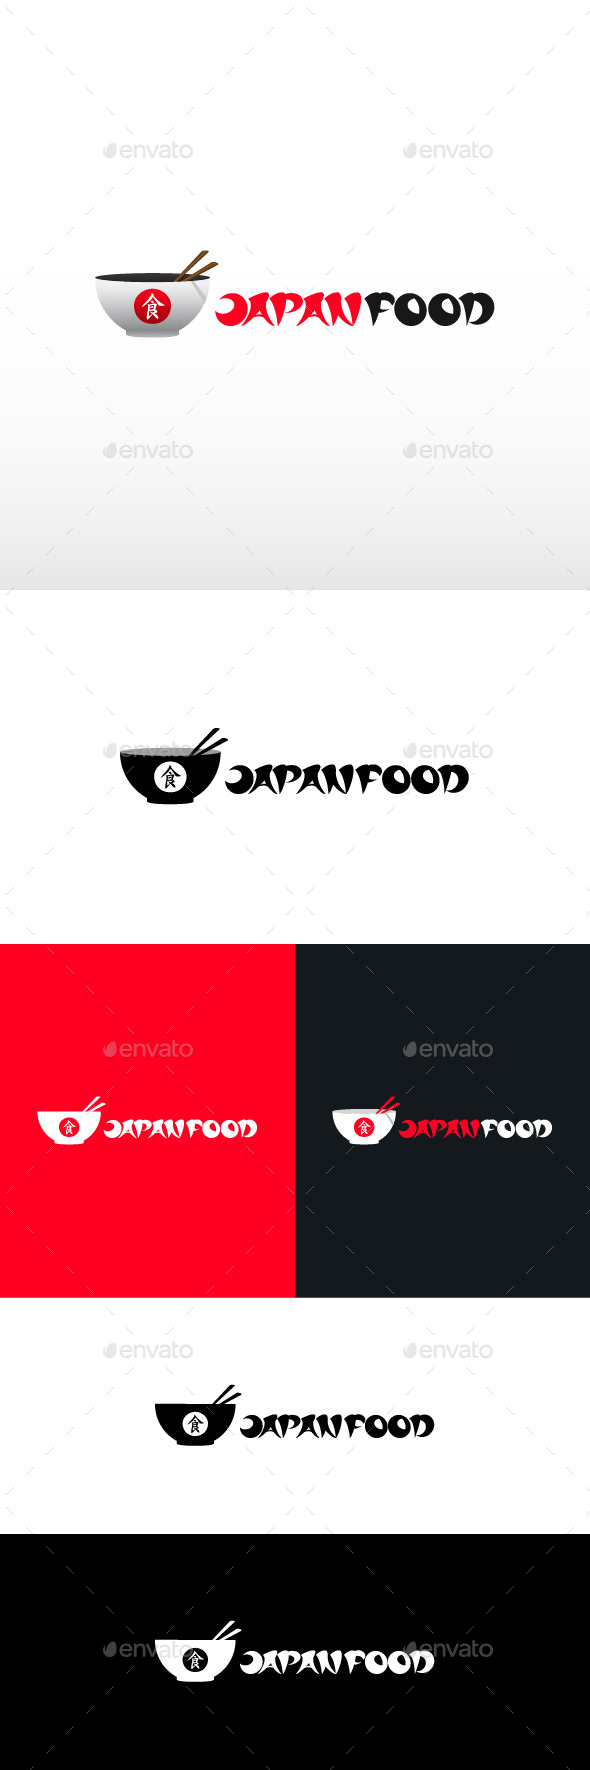 Japan Food Logo Template - Symbols Logo Templates